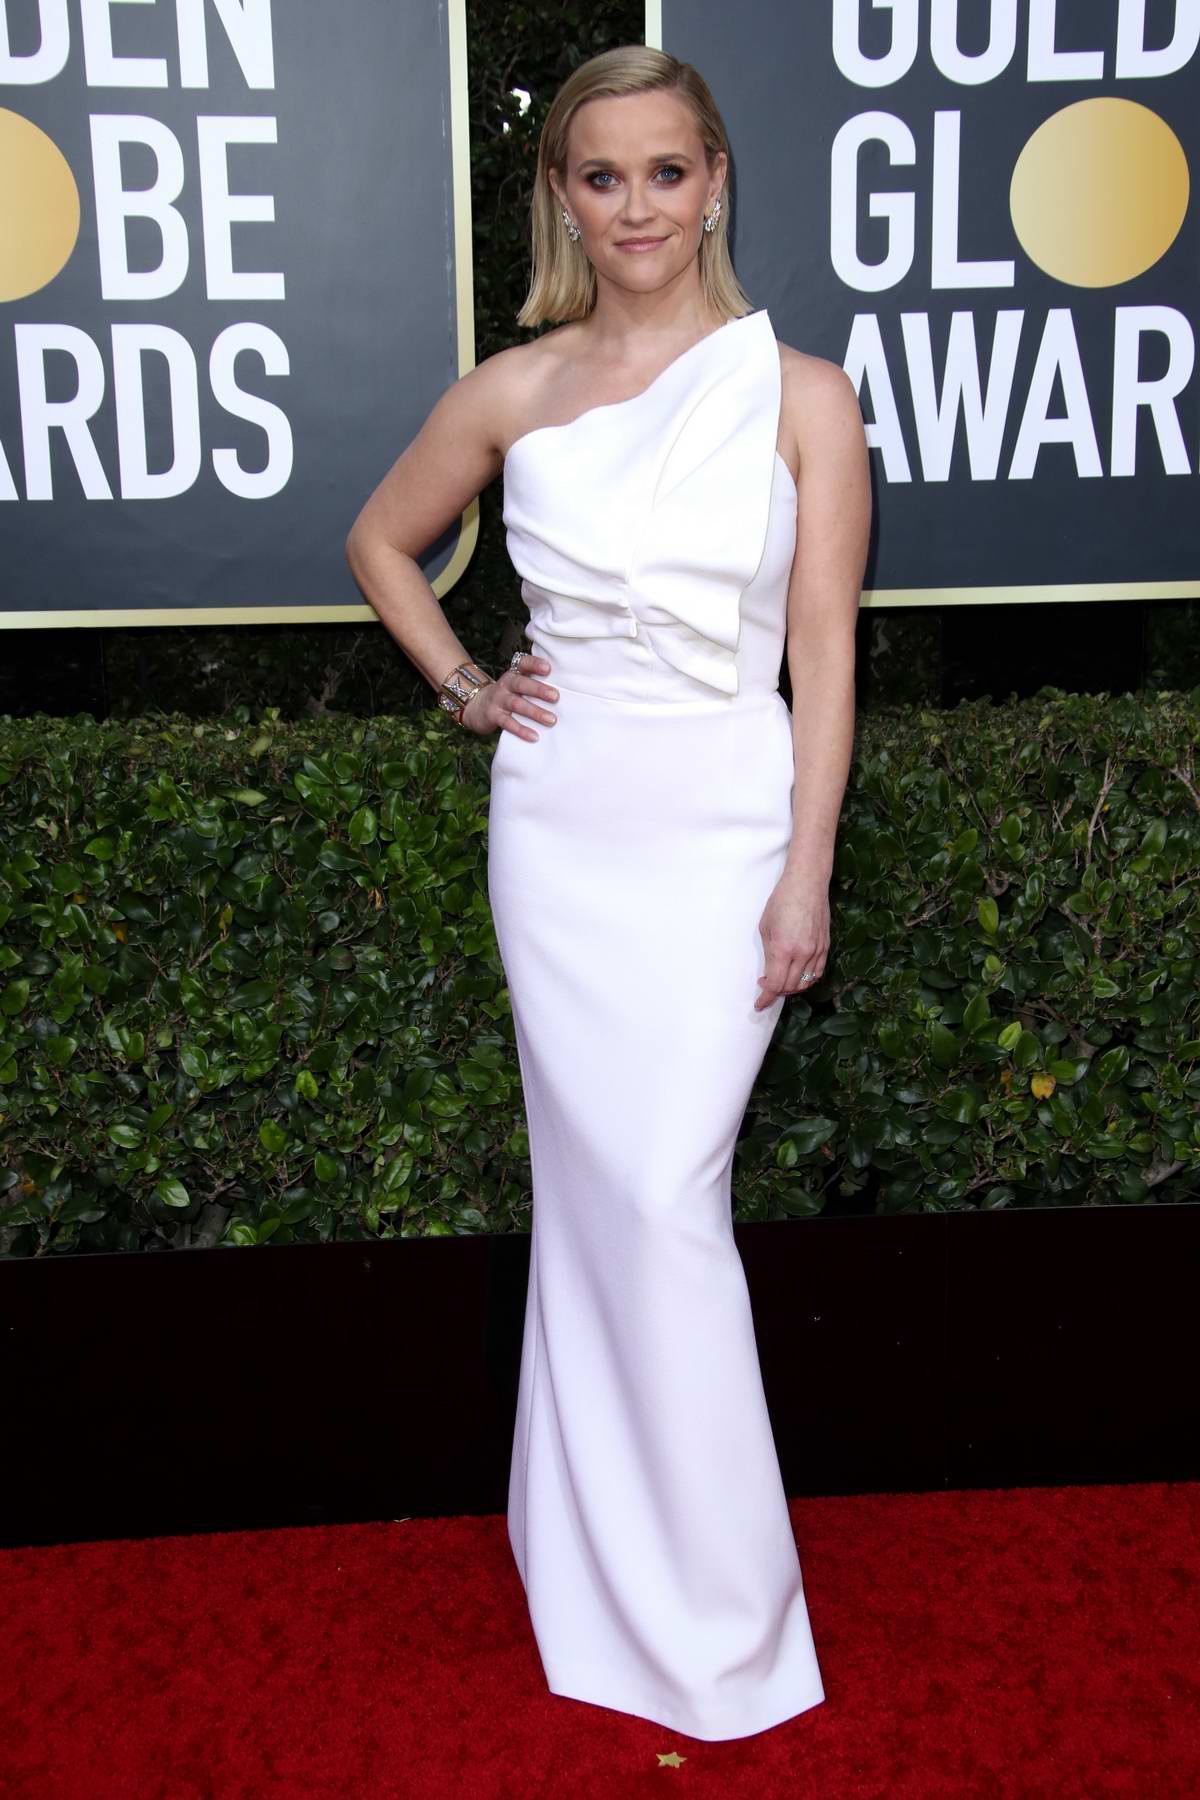 Reese Witherspoon attends the 77th Annual Golden Globe Awards at The Beverly Hilton Hotel in Beverly Hills, California